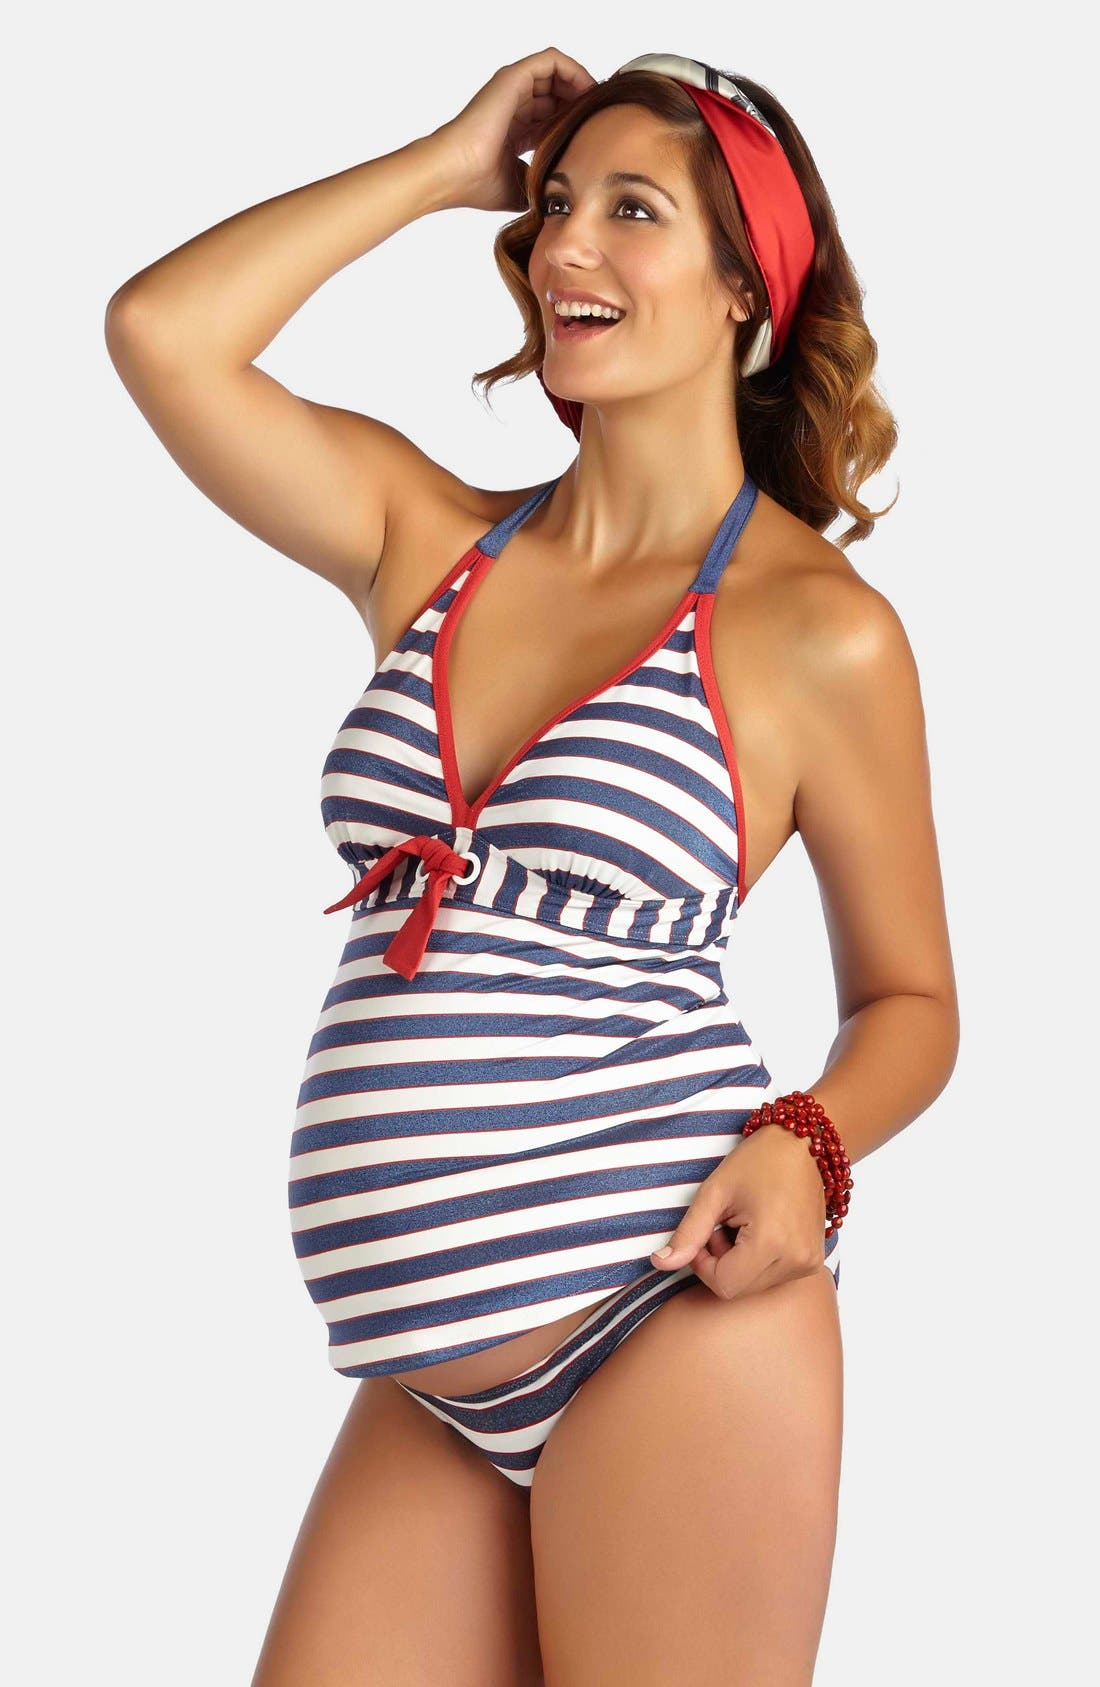 Pfft, that never happens when you're pregnant. At least that's what you'd think if you're trying to find one online. There are two sites I found: Bravissimo and Linda's that carry suits for us girls with the guns, and bikinis and tankinis look to be your best best.